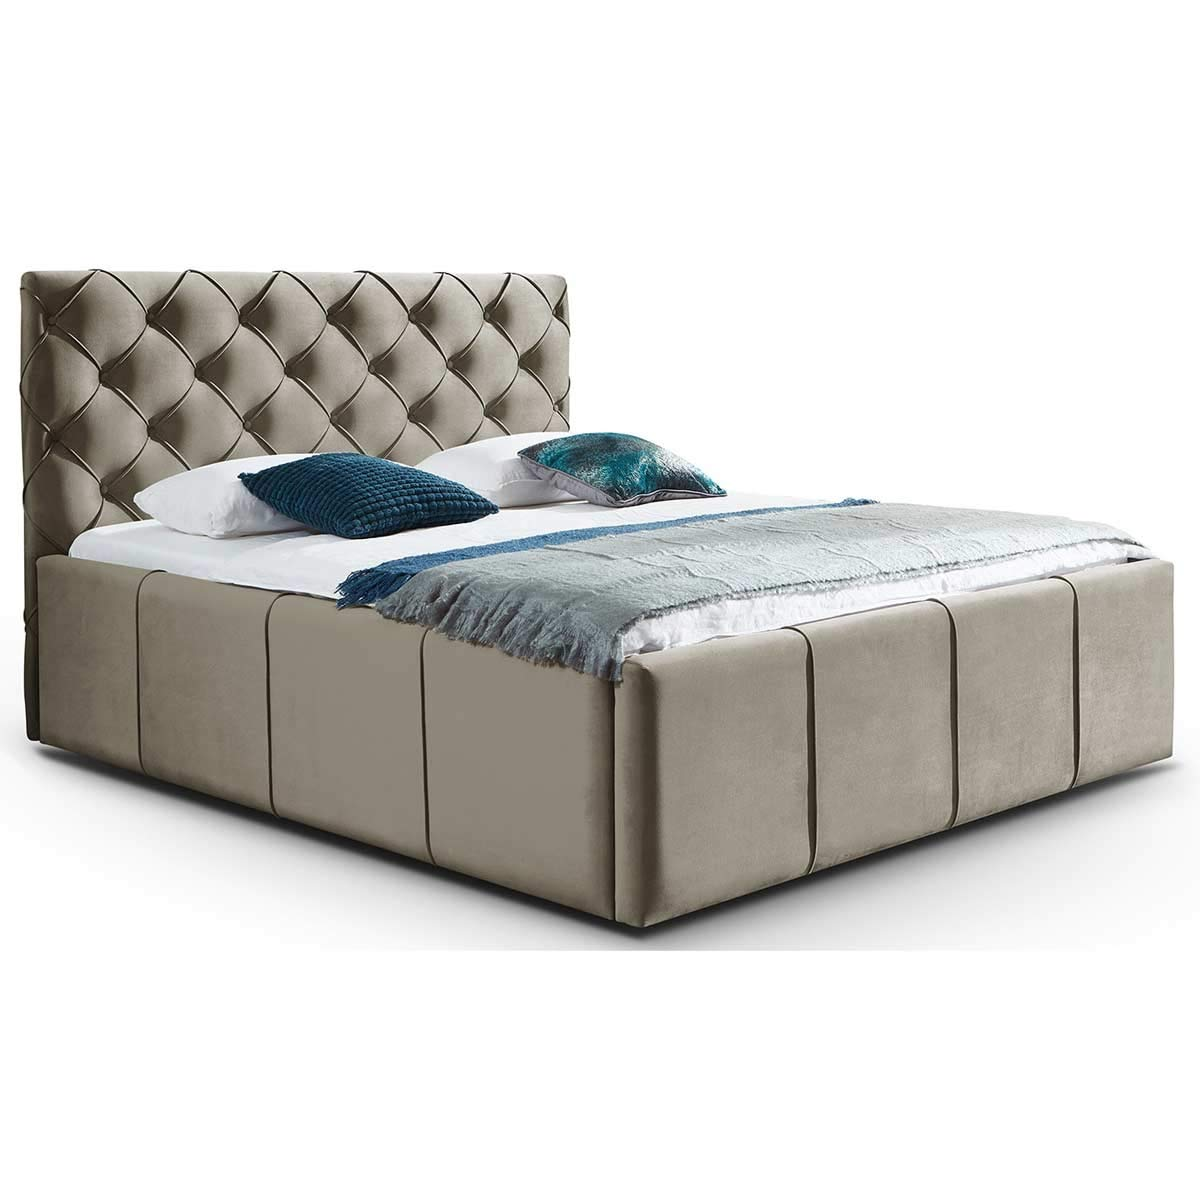 Full Size of Bett Mit Lattenrost Und Matratze 180x200 120x200 160x200 90x200 140x200 Bettkasten Samt Nelly Xxl Stauraum Chesterfield Stil Mitarbeitergespräche Führen Bett Bett Mit Lattenrost